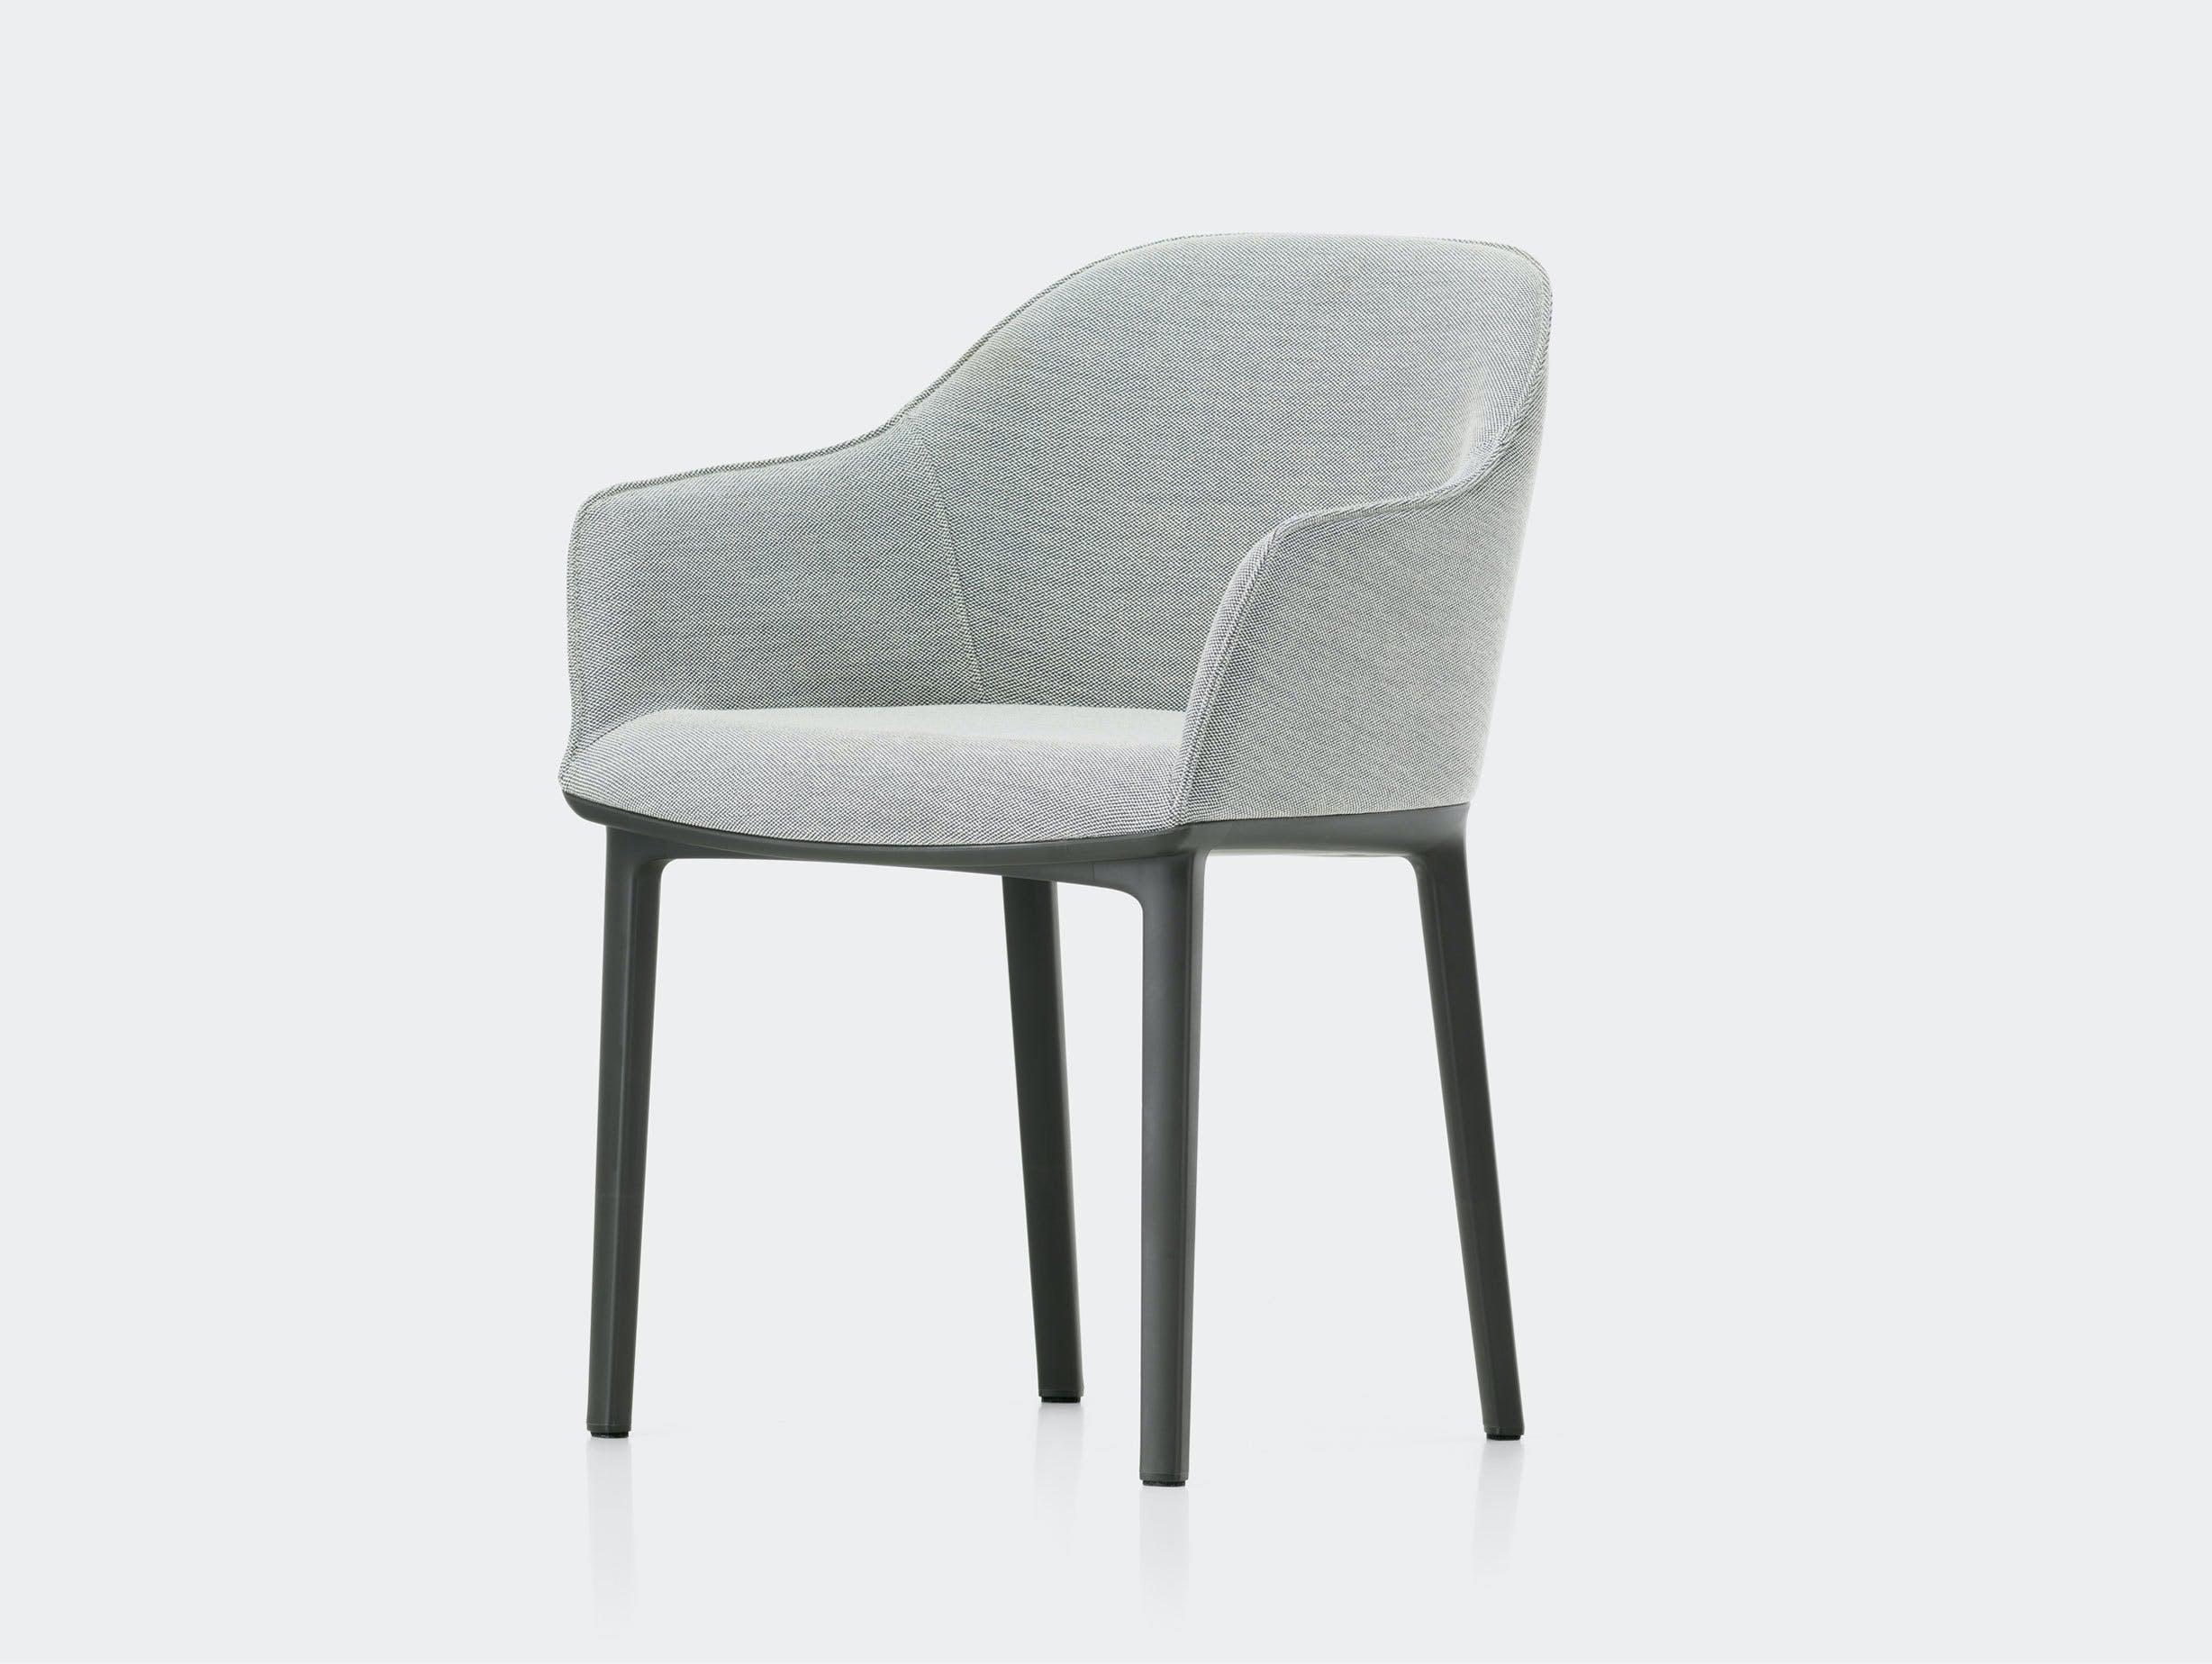 Vitra Softshell Chair Plano light grey Bouroullec